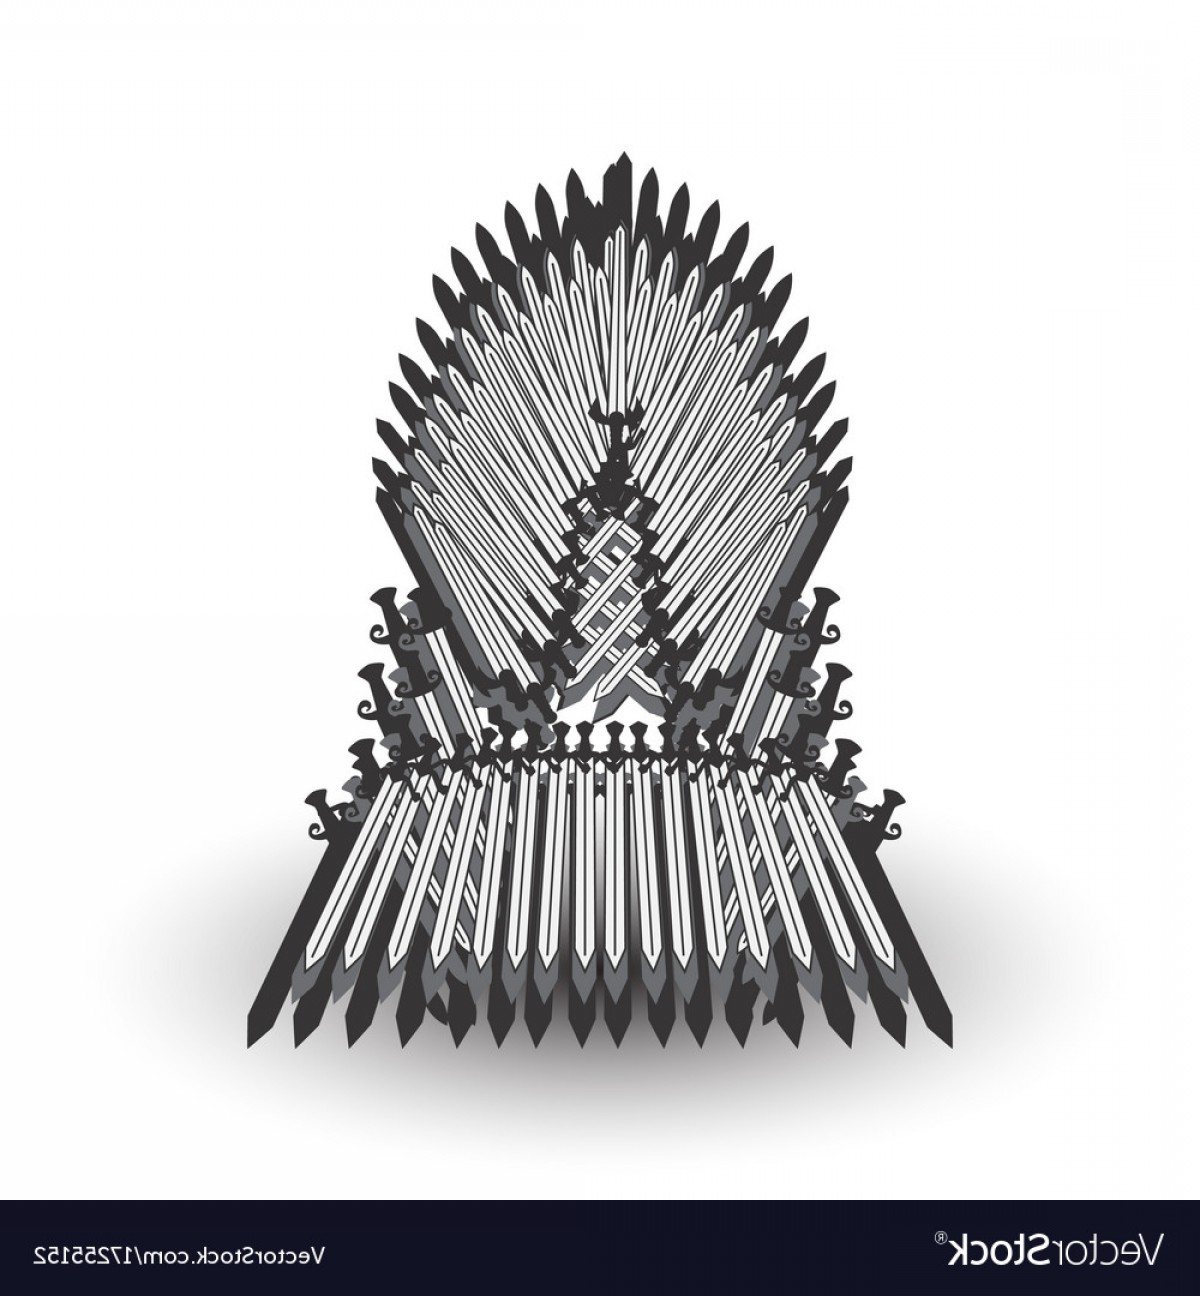 Game Of Thrones Sword Silhouette Vector: Iron Throne For Computer Games Design Vector